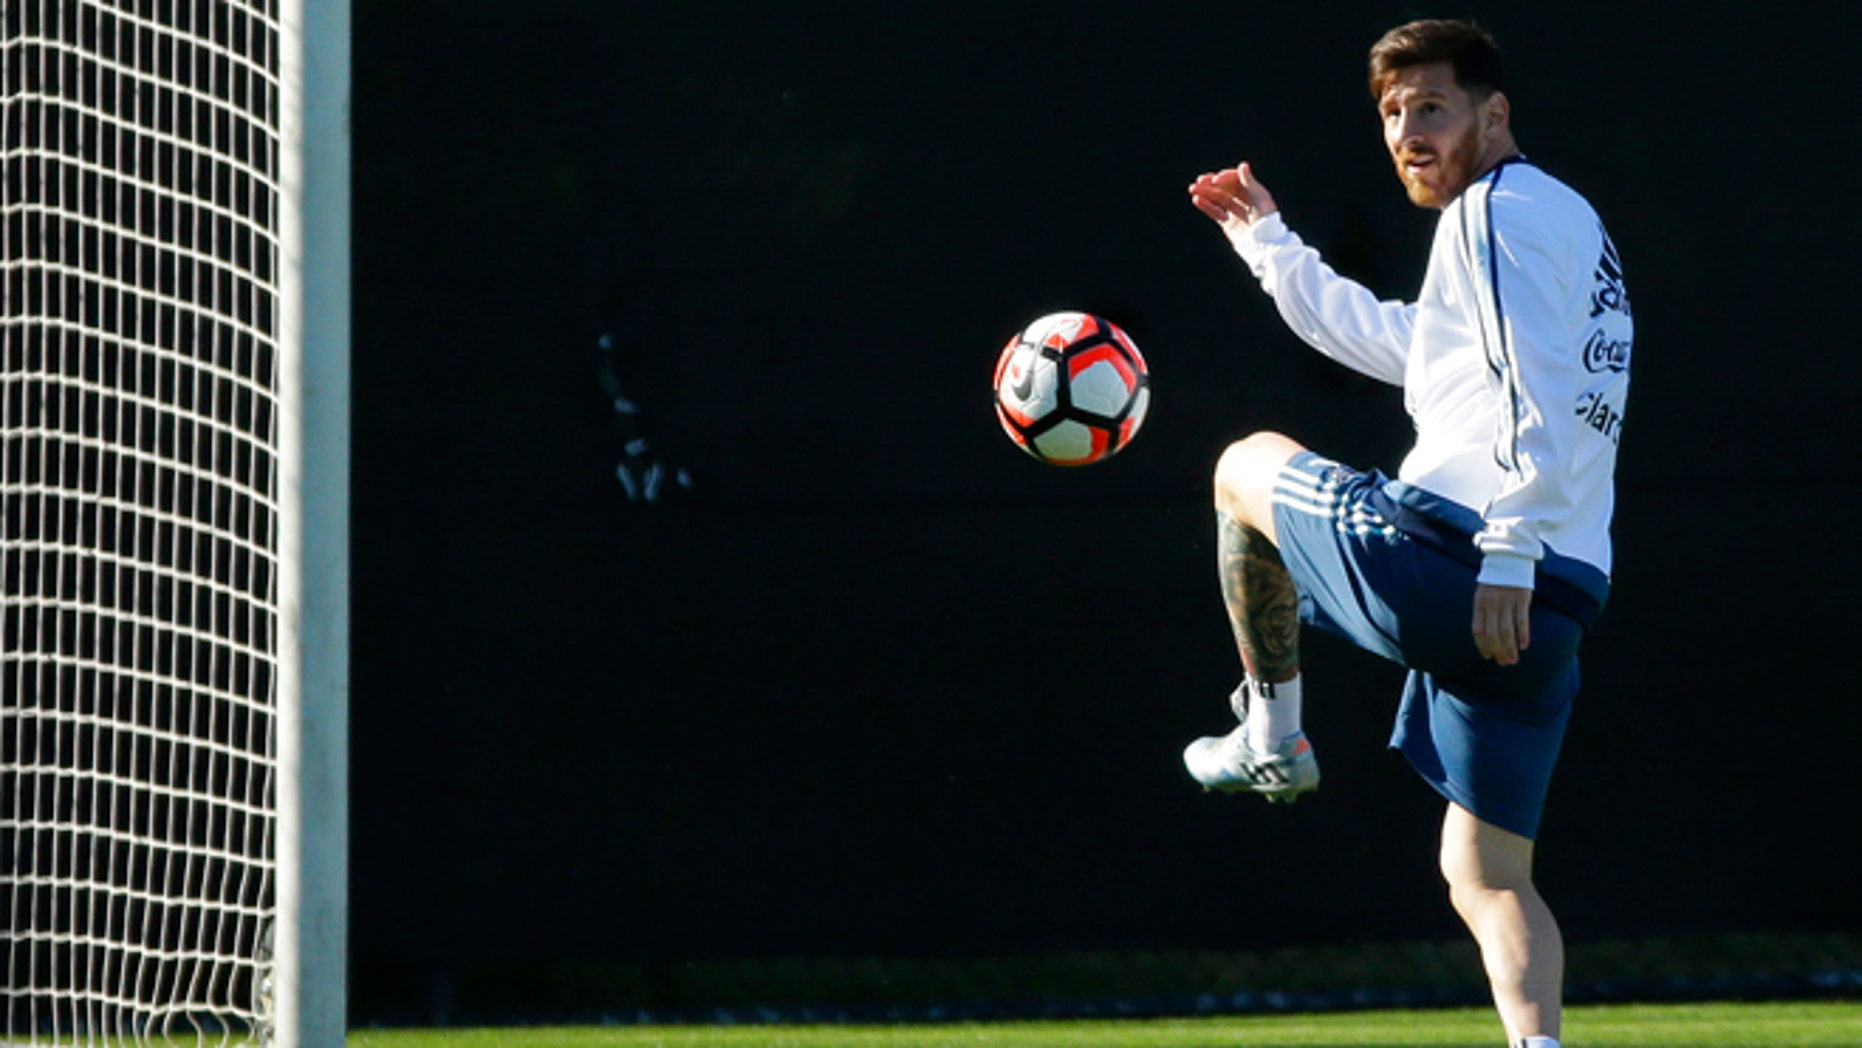 Argentina midfielder Lionel Messi kicks the ball during practice, Monday, June 13, 2016, in Tukwila, Wash. Argentina is scheduled to face Bolivia on Tuesday in a Copa America Centenario soccer match in Seattle. (AP Photo/Ted S. Warren)